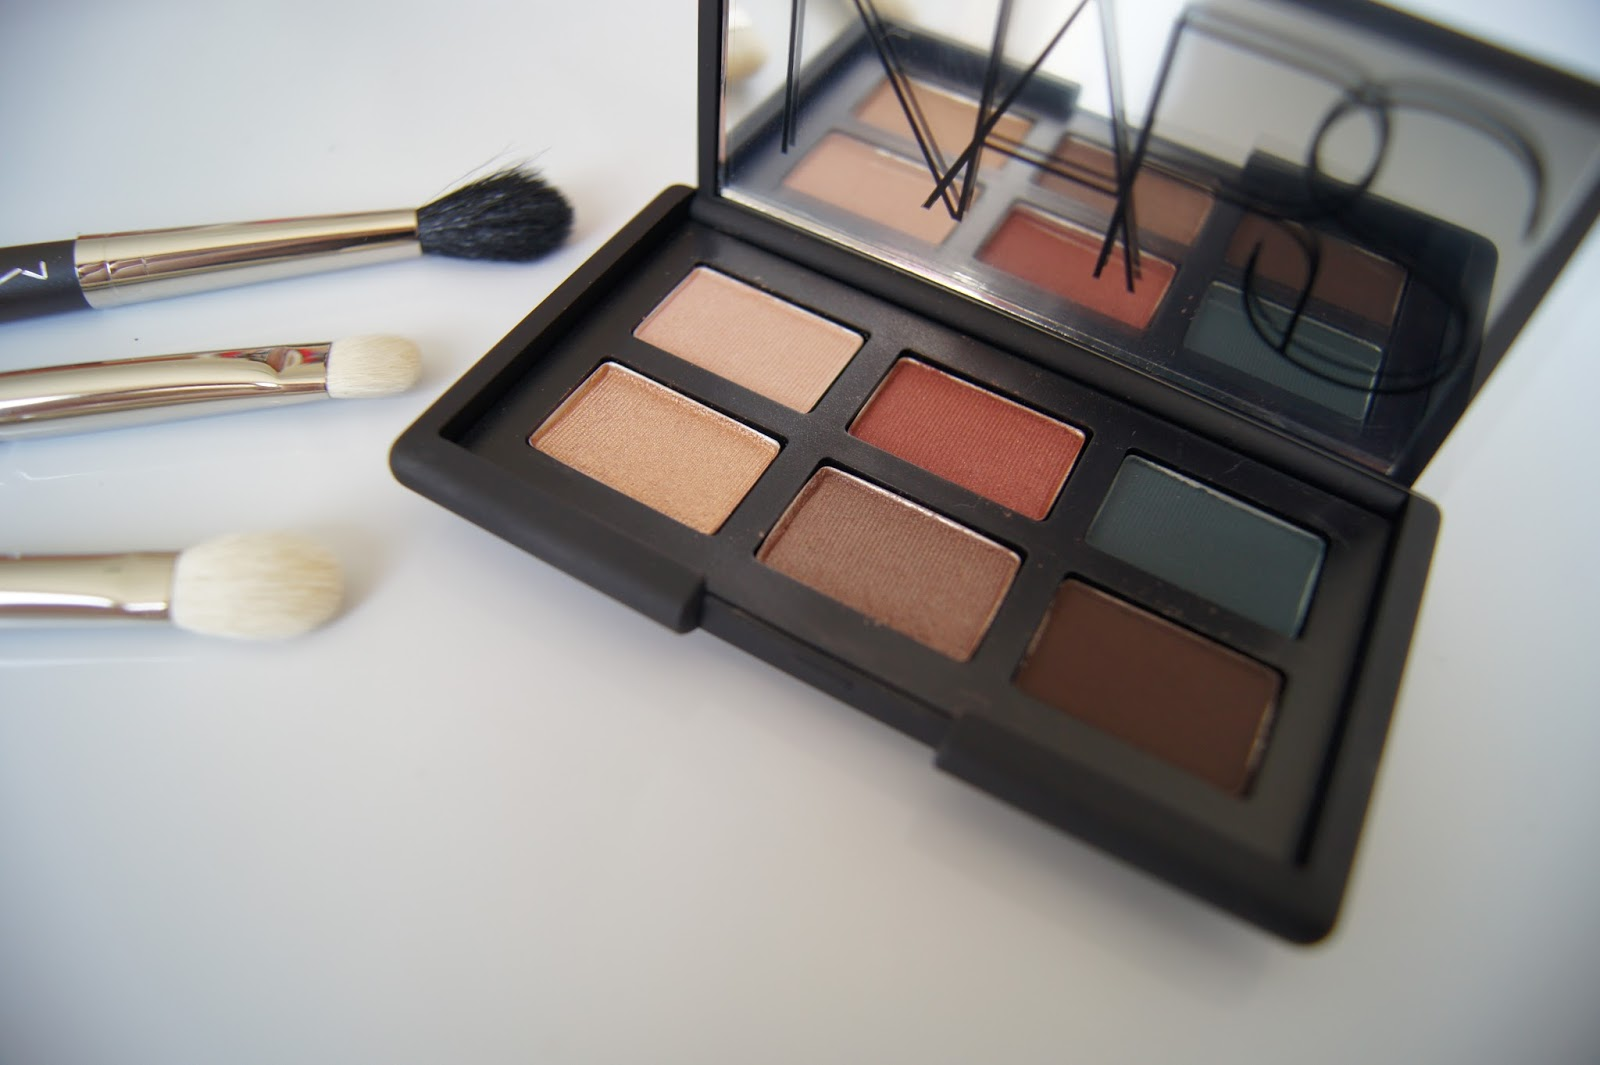 NARS Eye Opening Act-Yeux Irresistible Eyeshadow Palette review